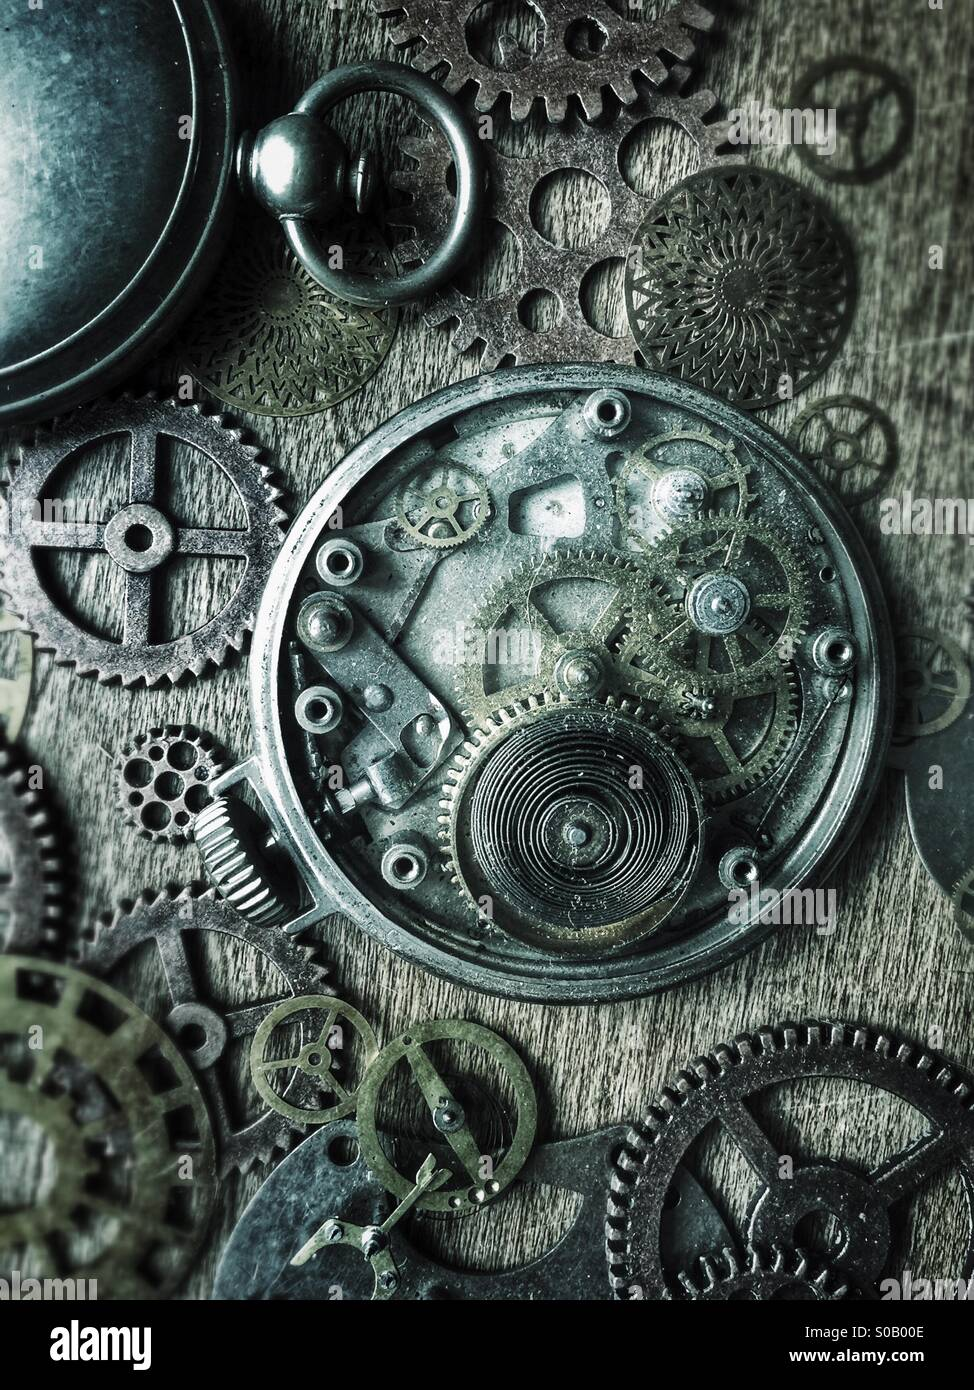 Pocket watches and gears. - Stock Image